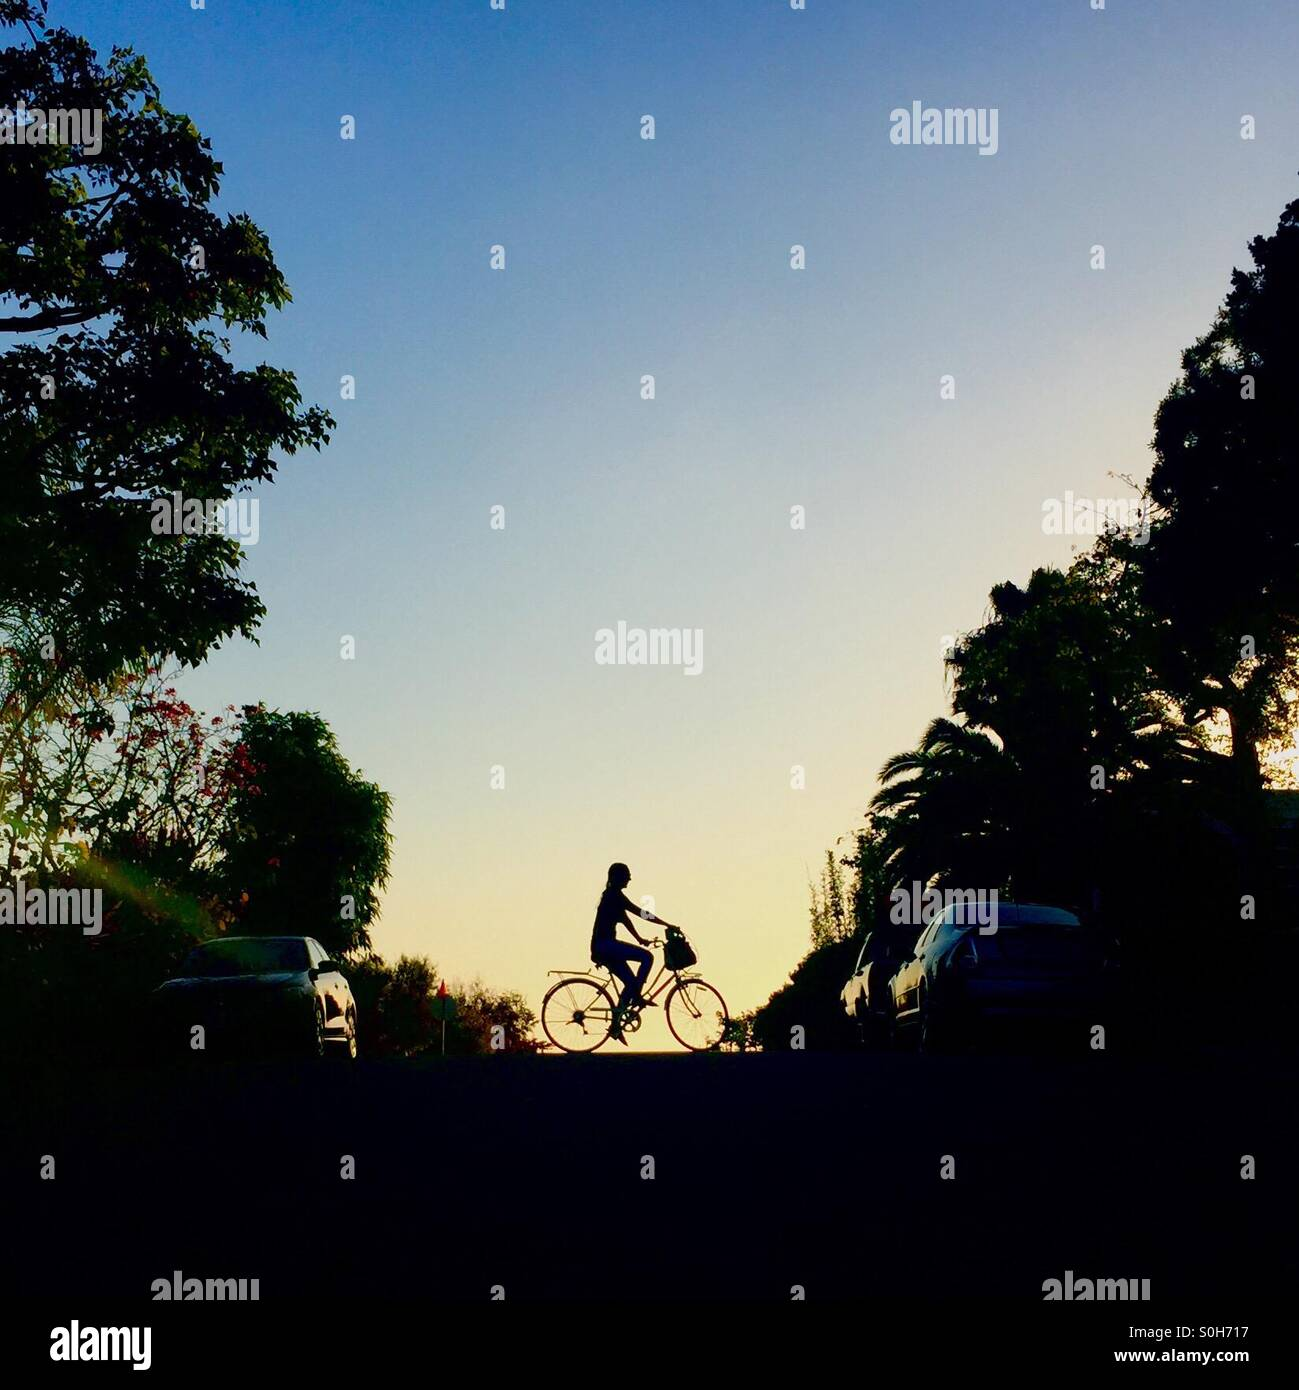 Silhouette of a girl riding a bike - Stock Image